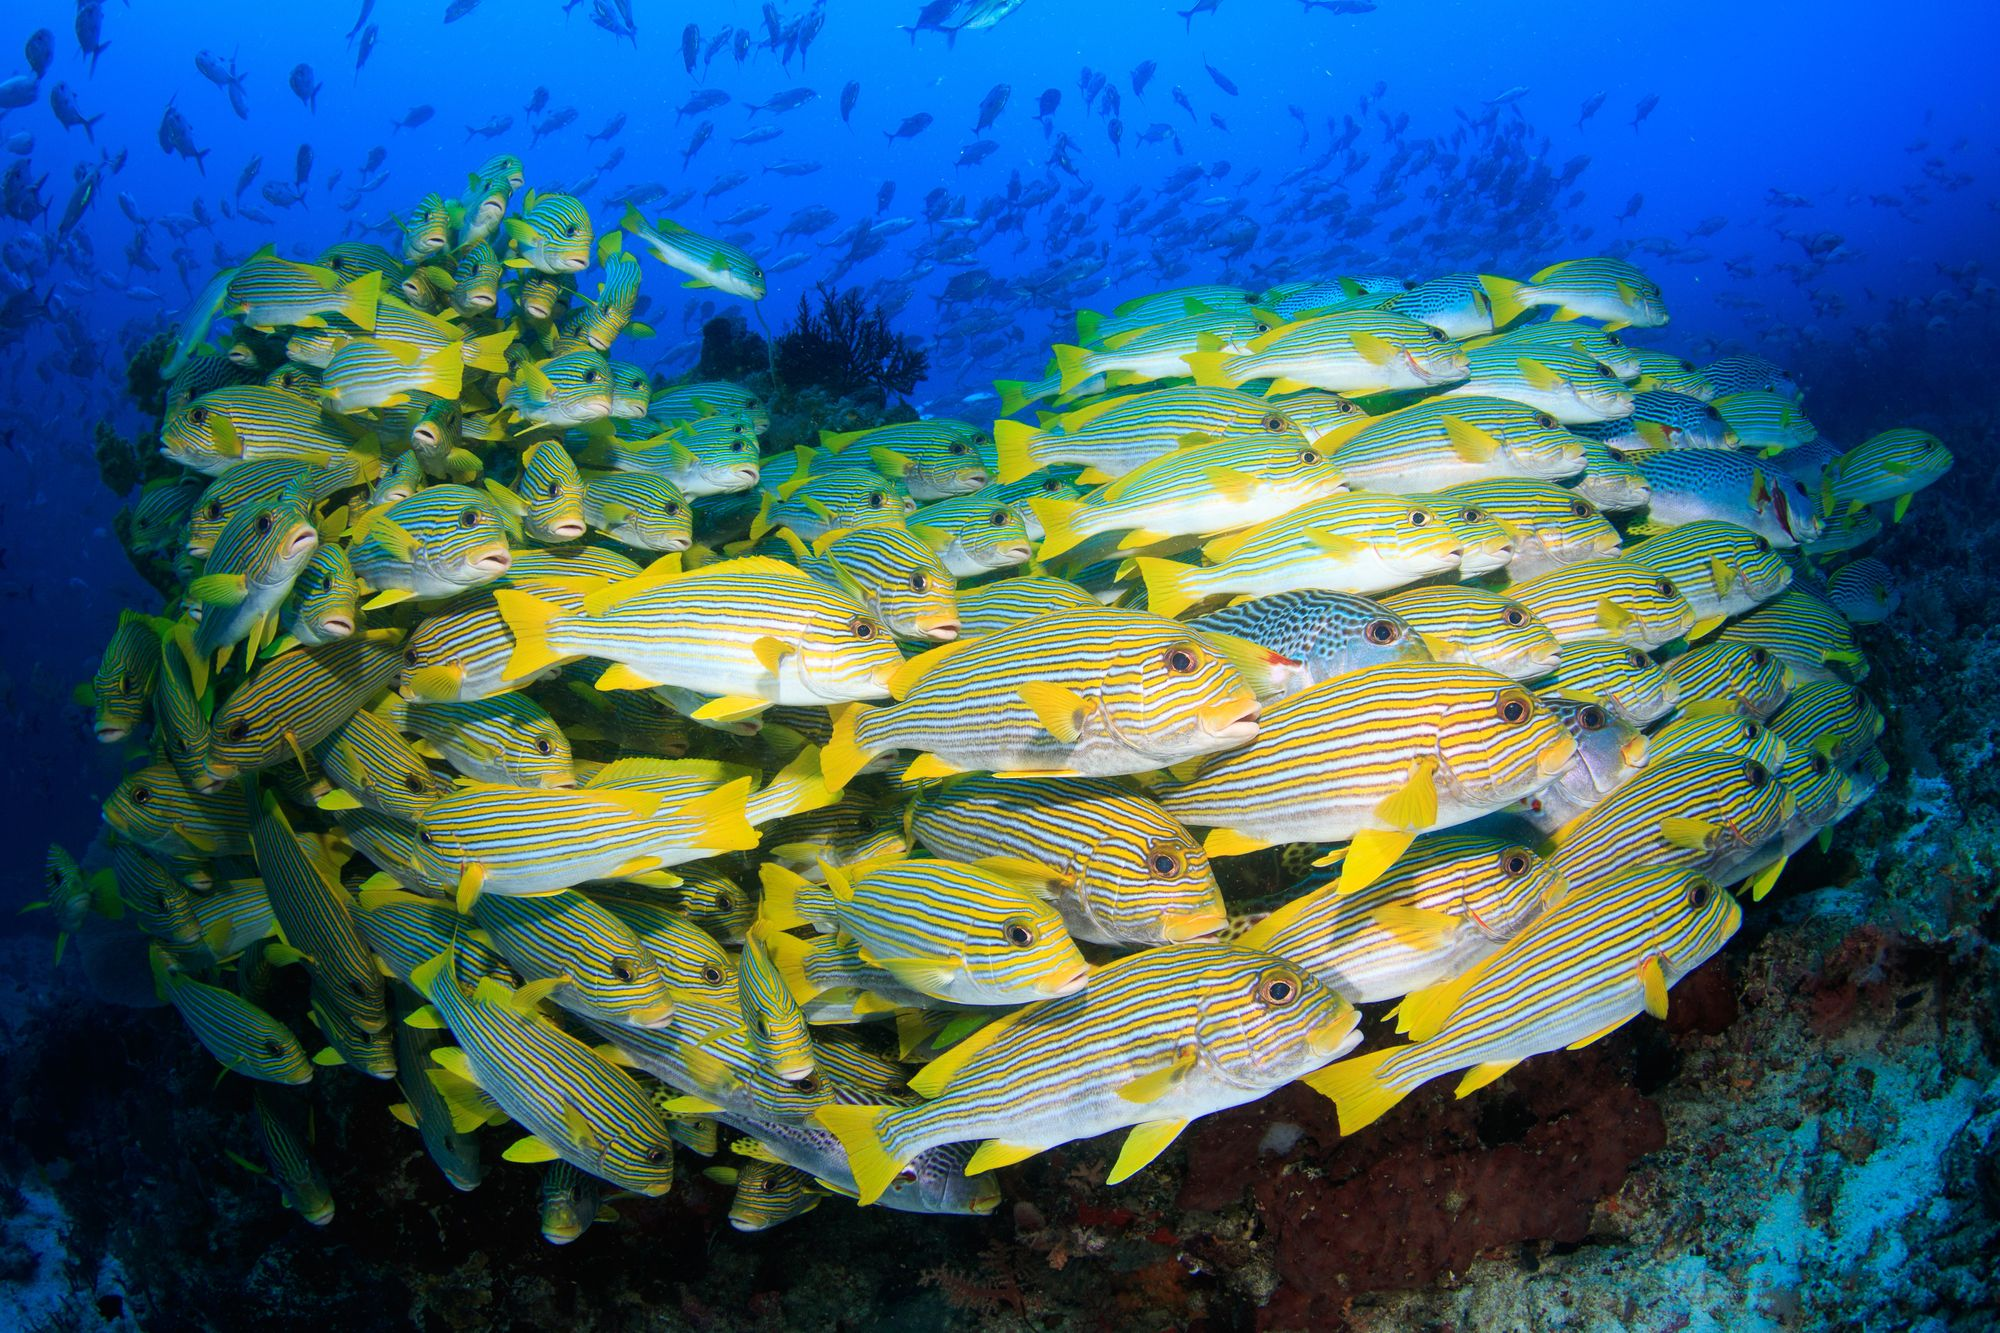 Has a new paradigm for ocean management finally arrived?